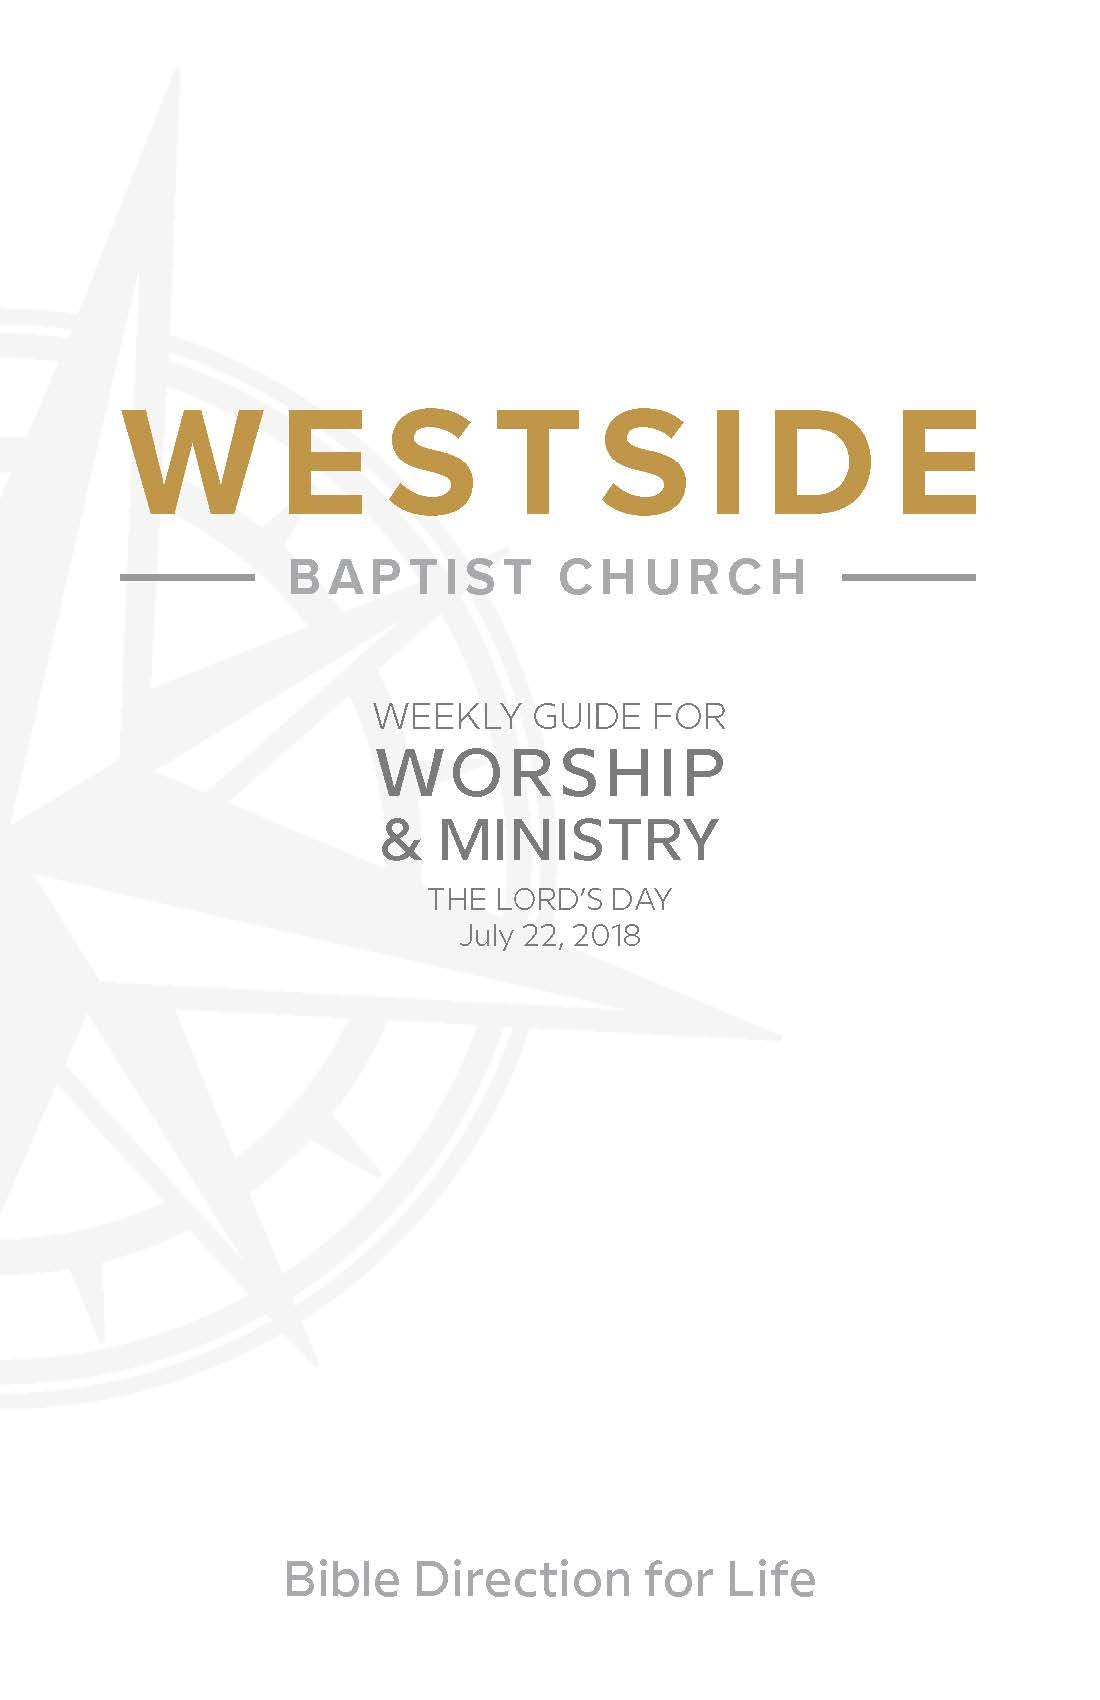 Weekly Guide for Worship and Ministry—July 22